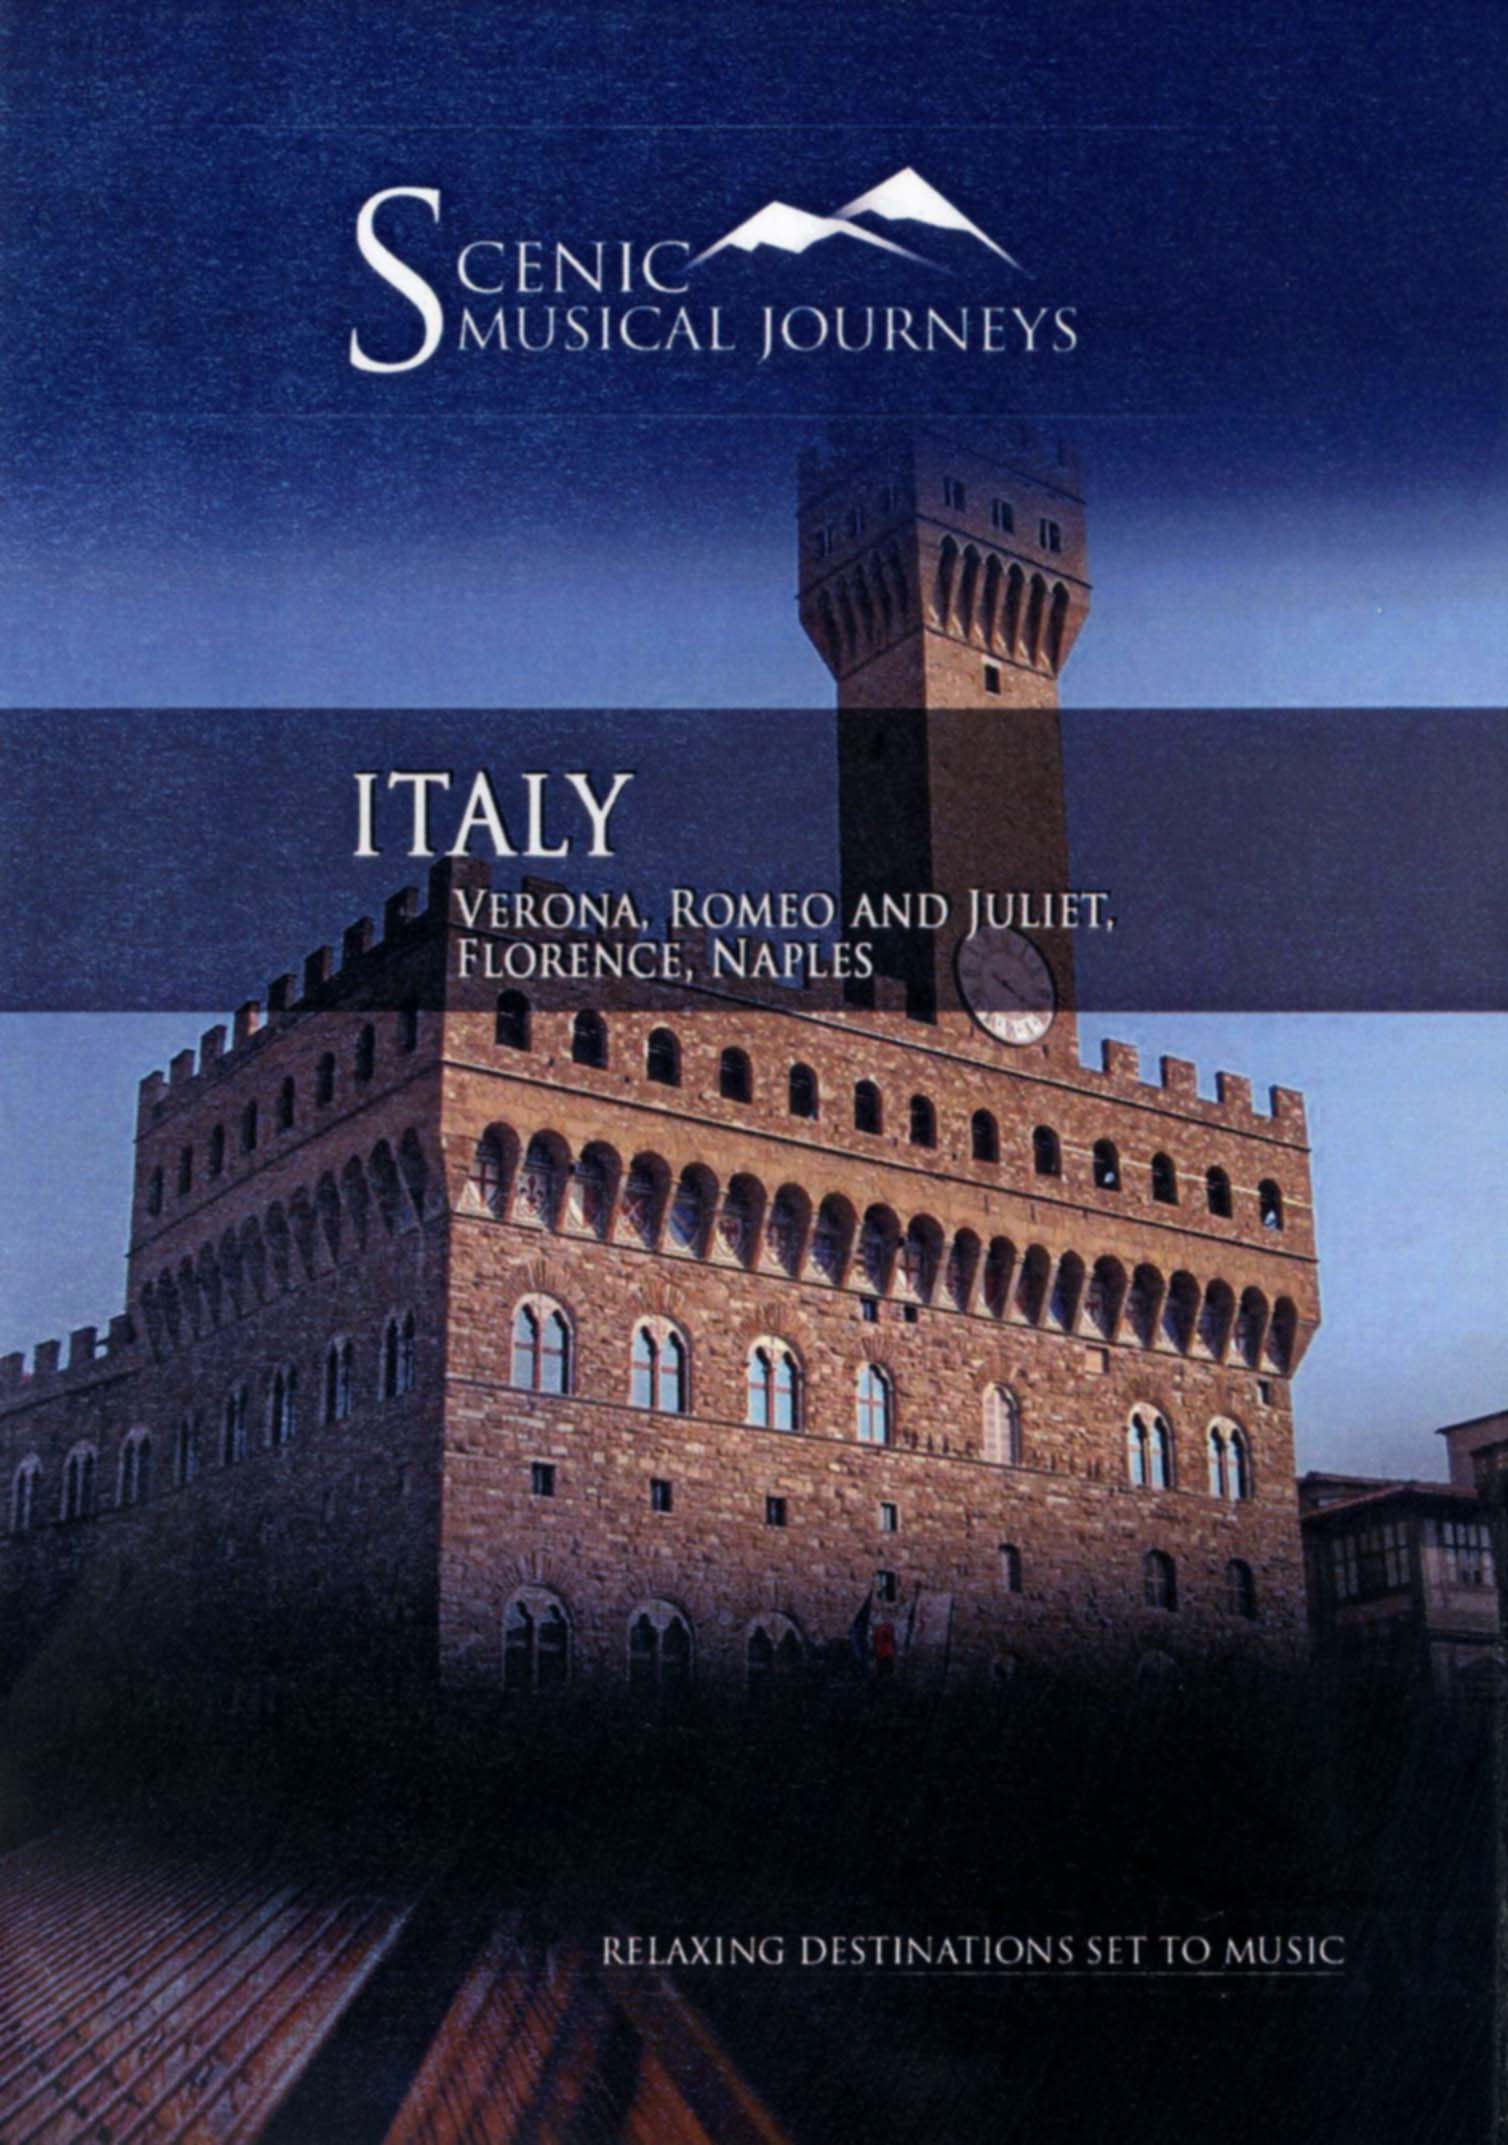 Scenic Musical Journeys: Italy - Verona, Romeo and Juliet, Florence, Naples